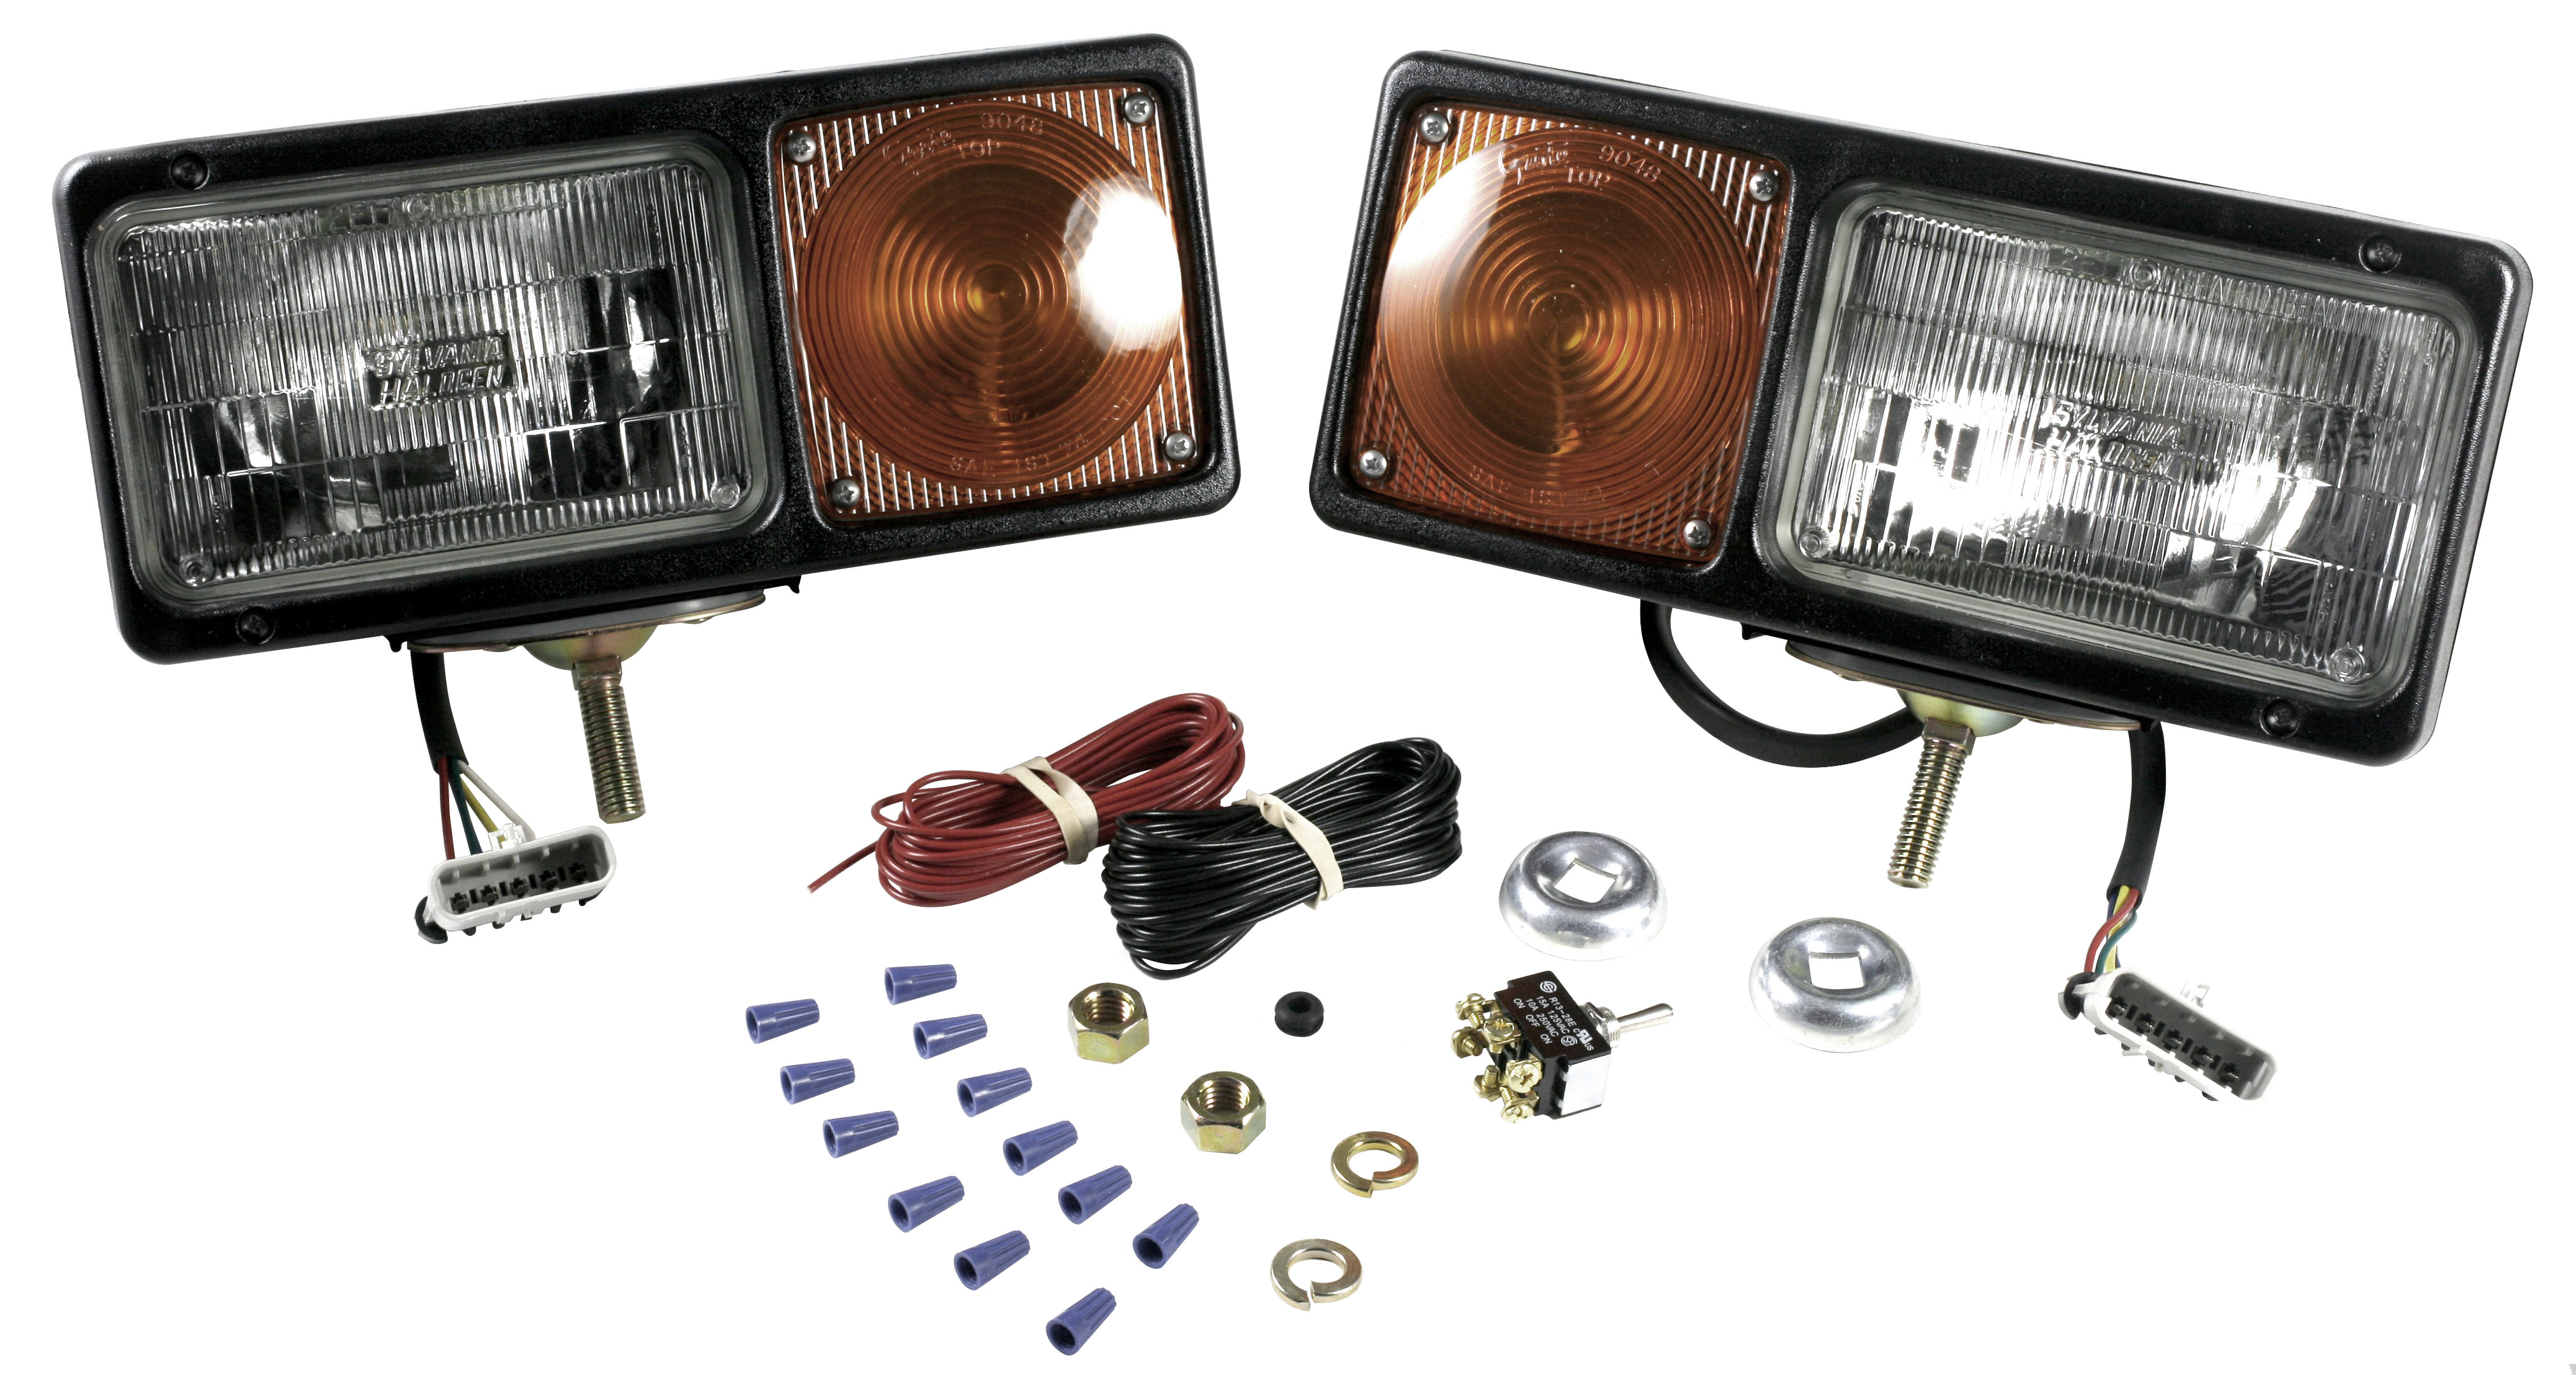 64291-4 – Per-Lux® Snowplow Lights, Sealed Beam w/ Connector, Pair Pack